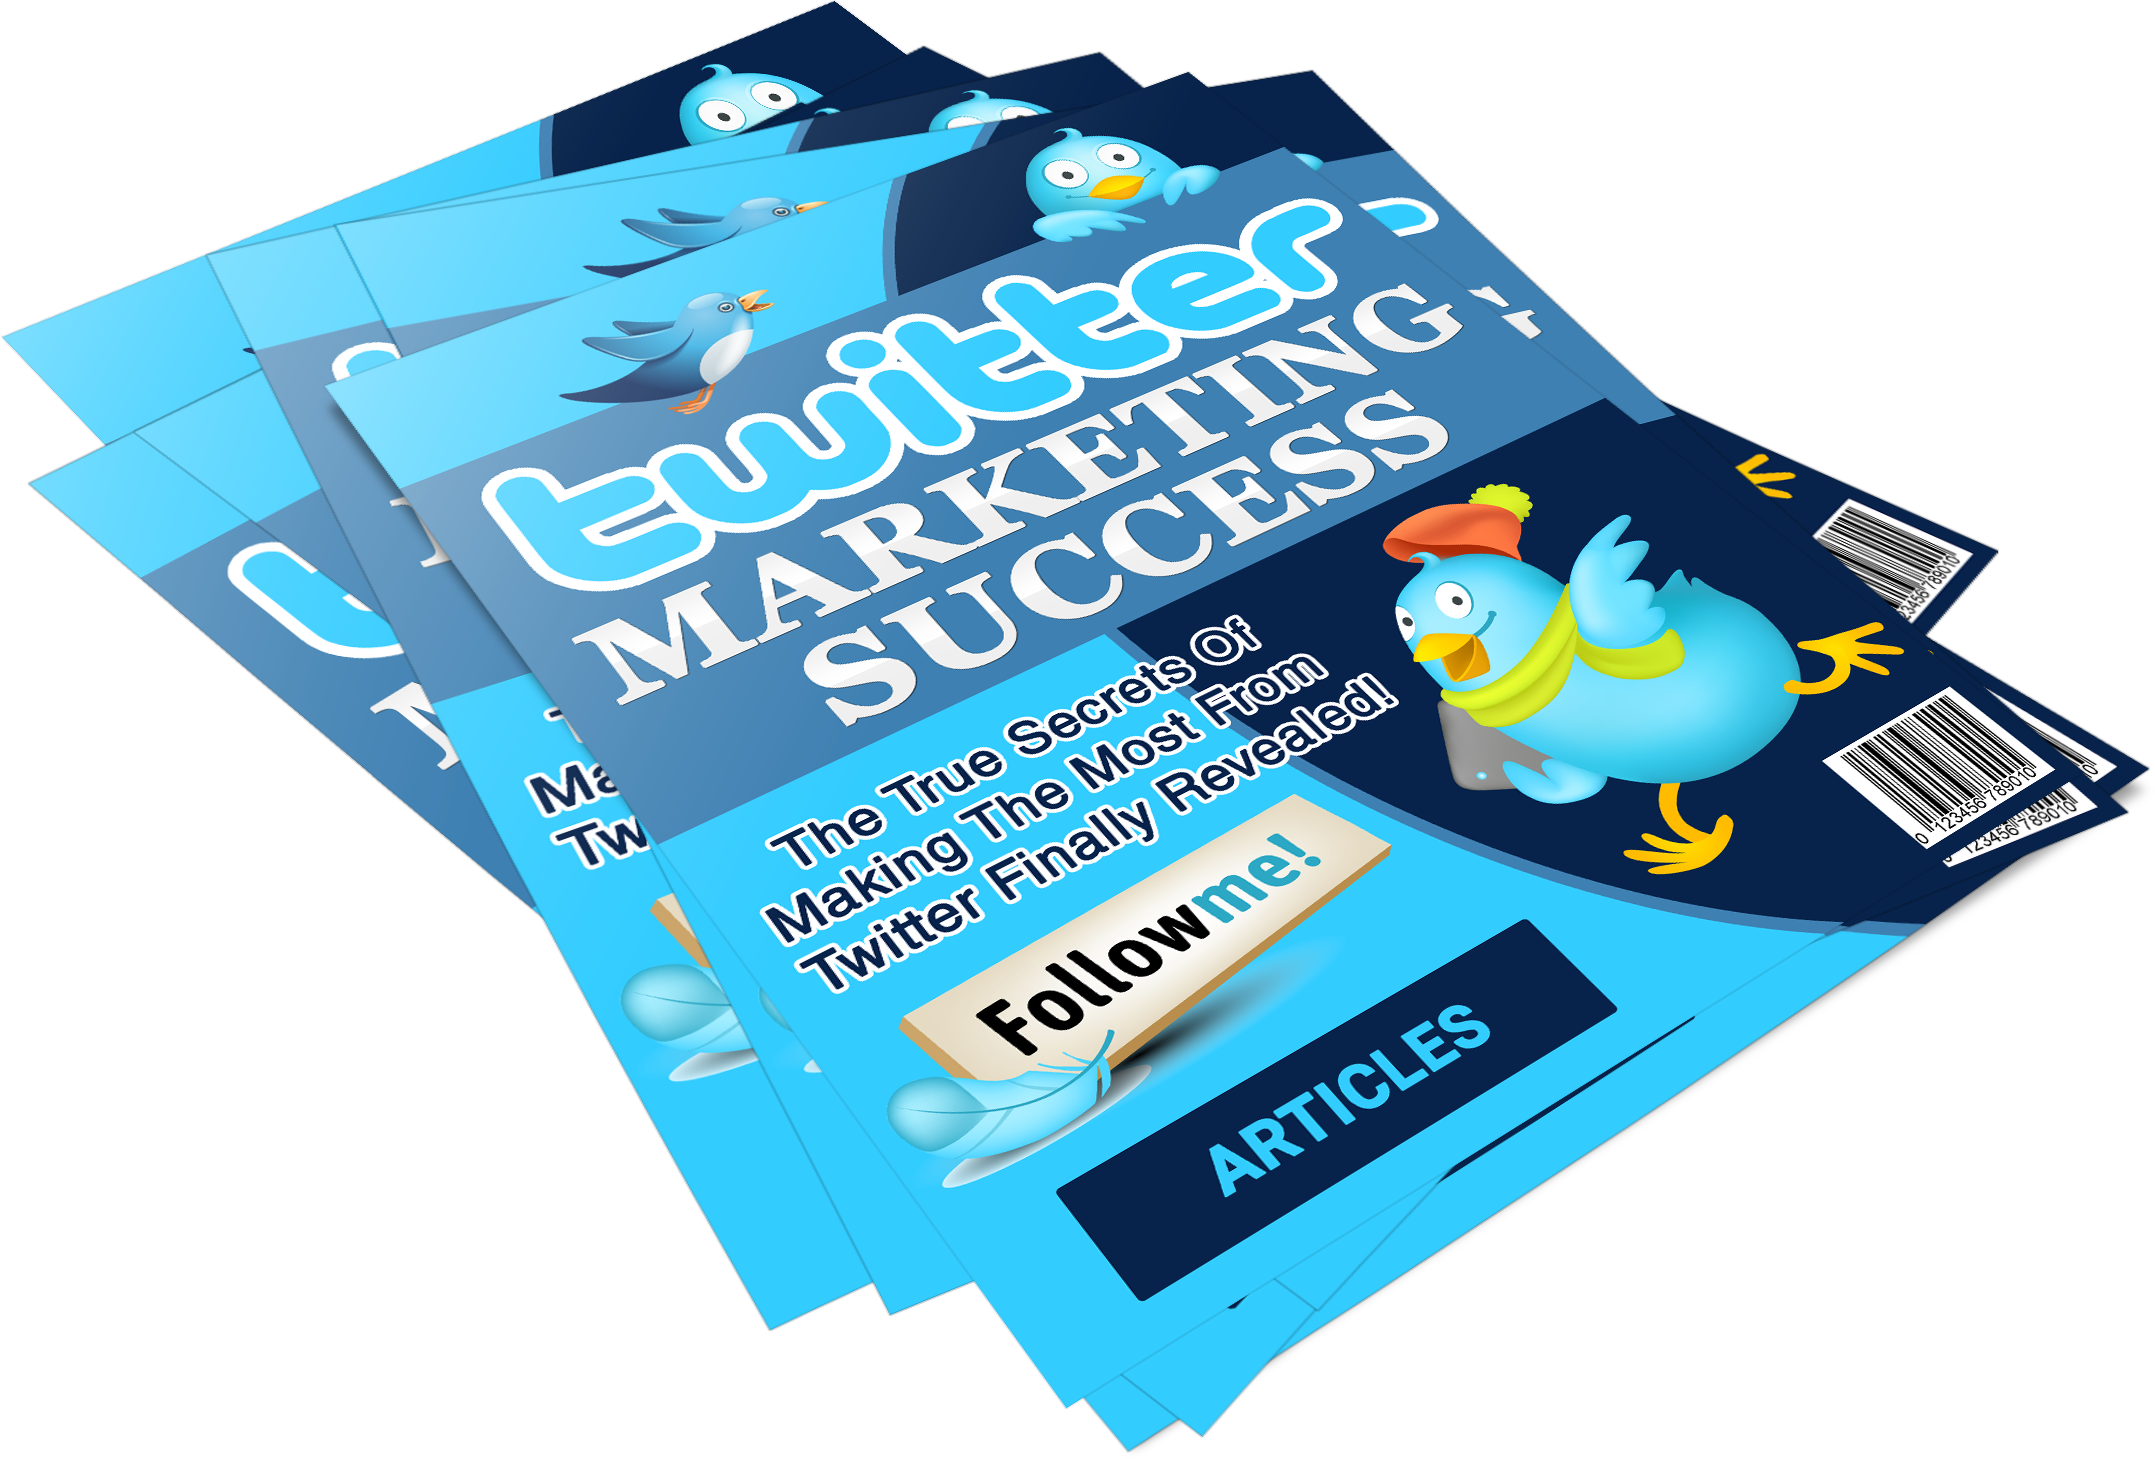 Twitter Marketing Success Quality Articles